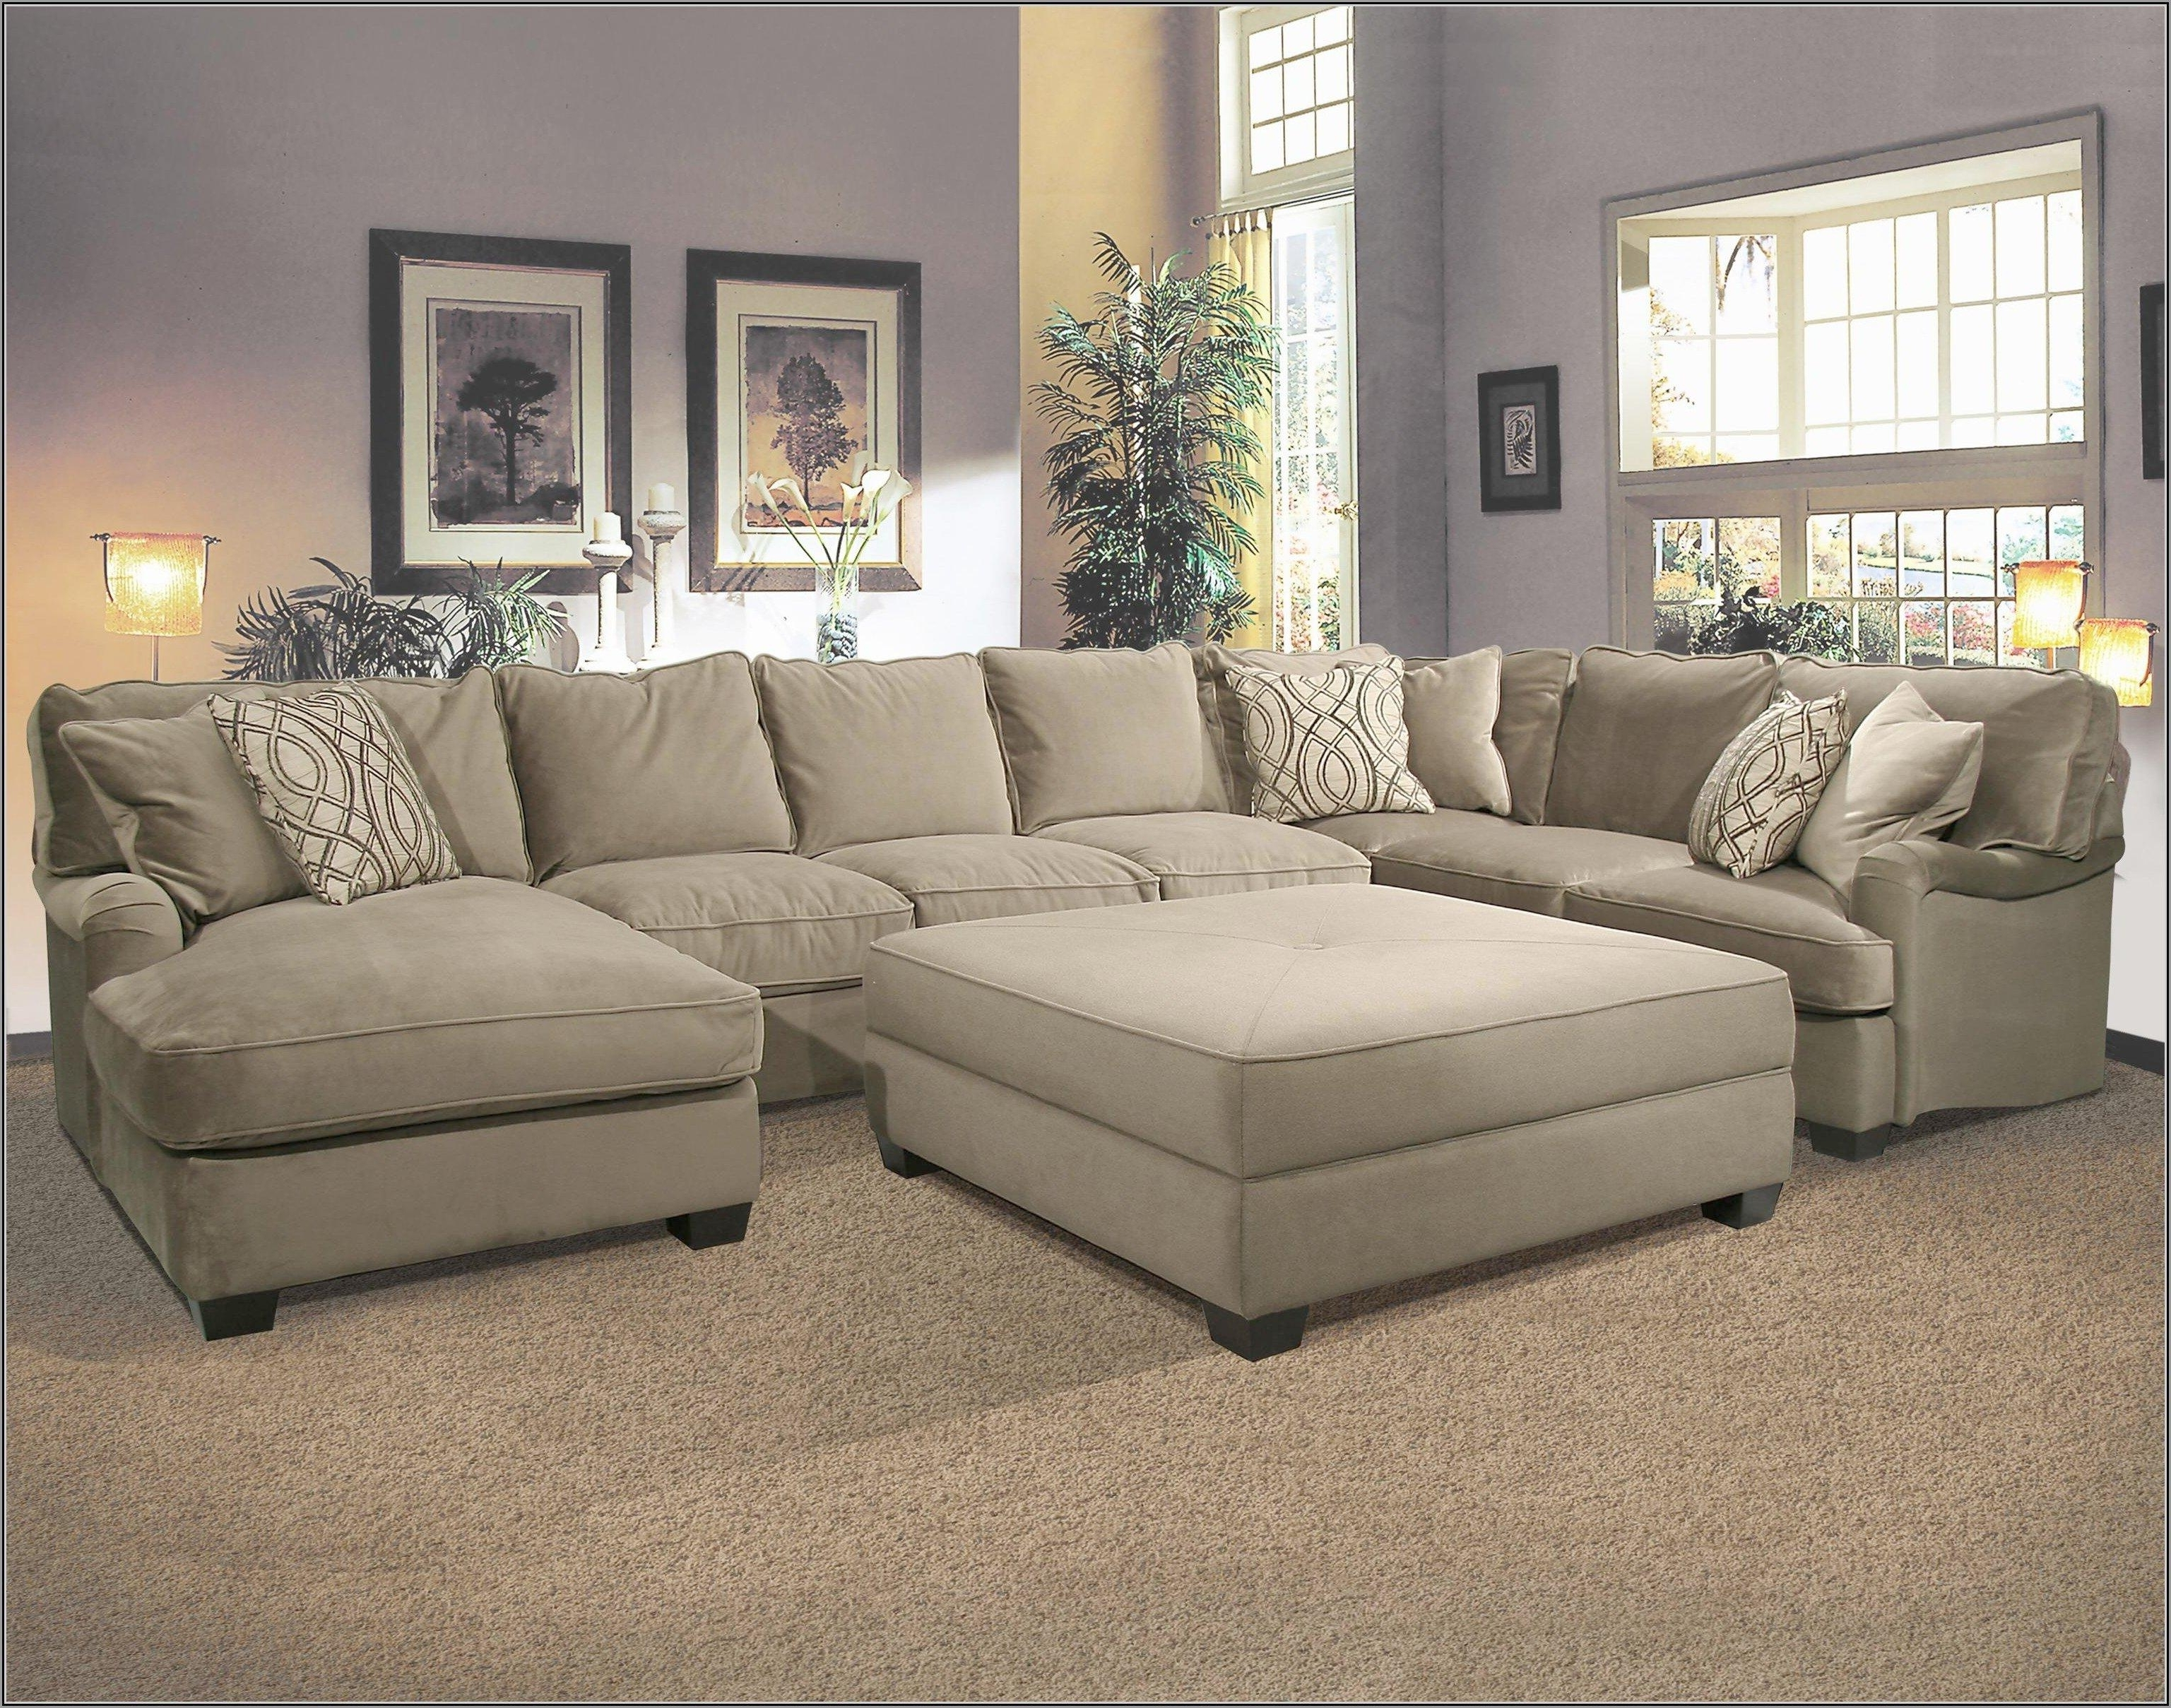 Sofa : Deep Seated Sectional New Sectional Sofa With Ottoman Deep Pertaining To Widely Used Sectional Sofas That Can Be Rearranged (View 13 of 20)